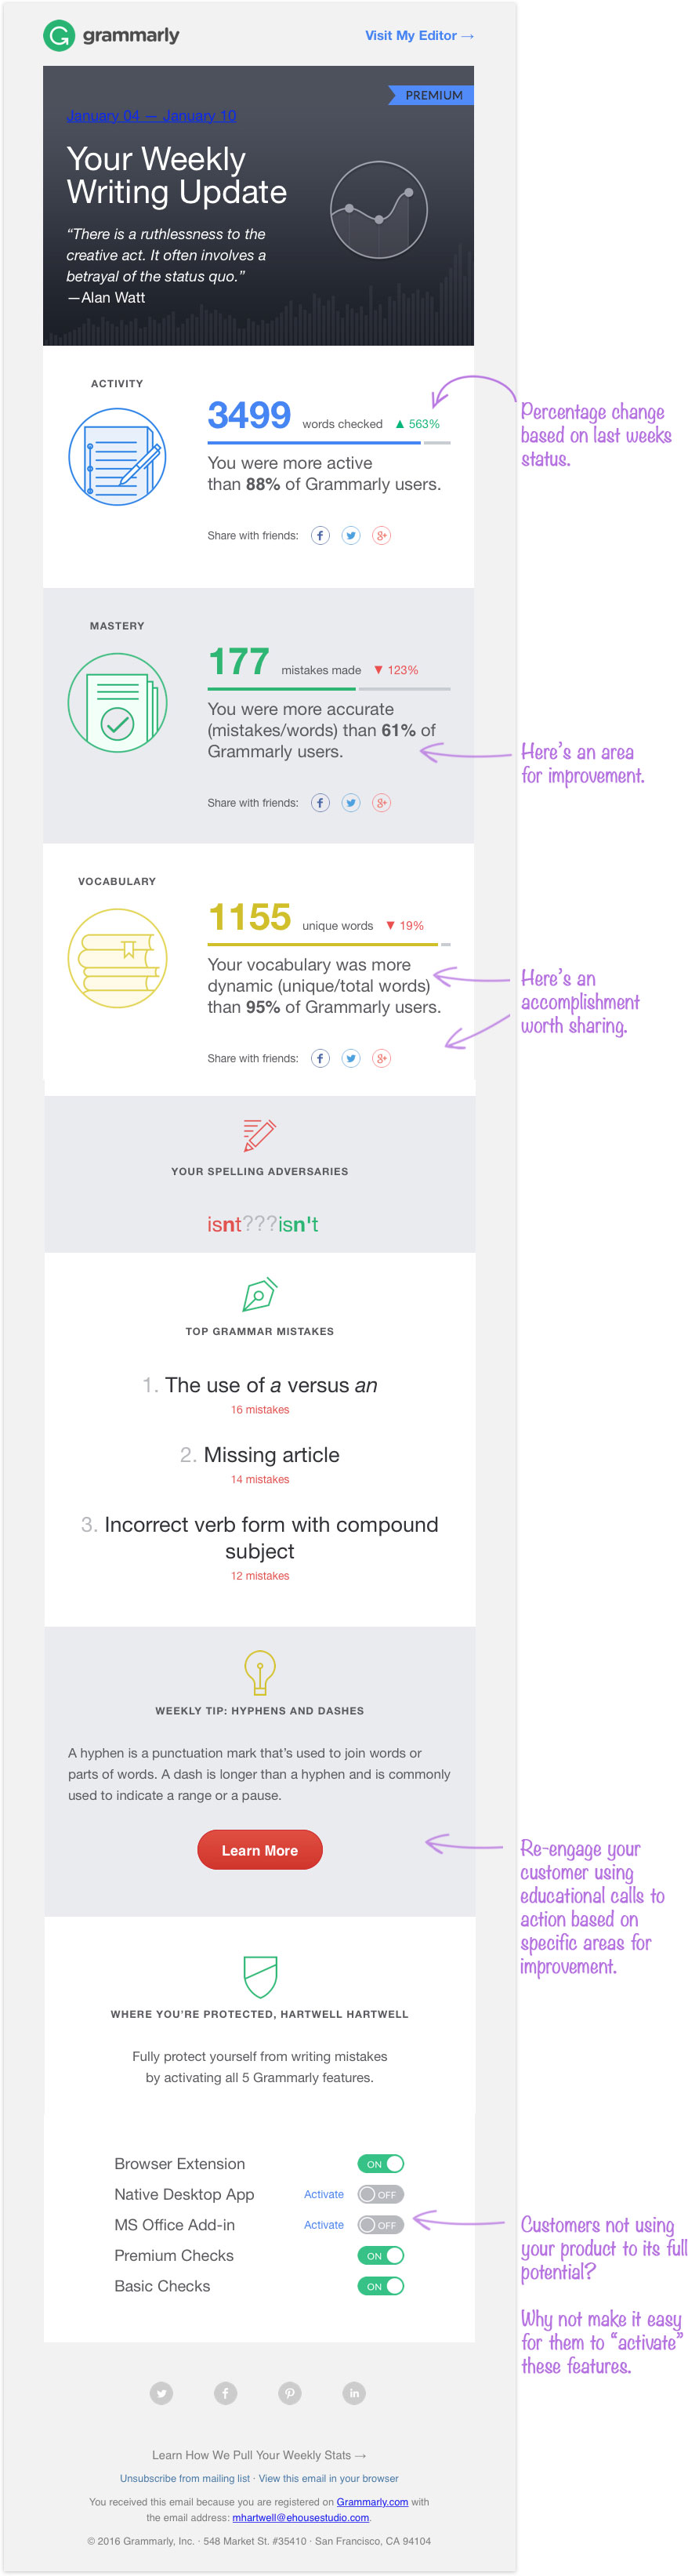 Grammarly Transactional Email